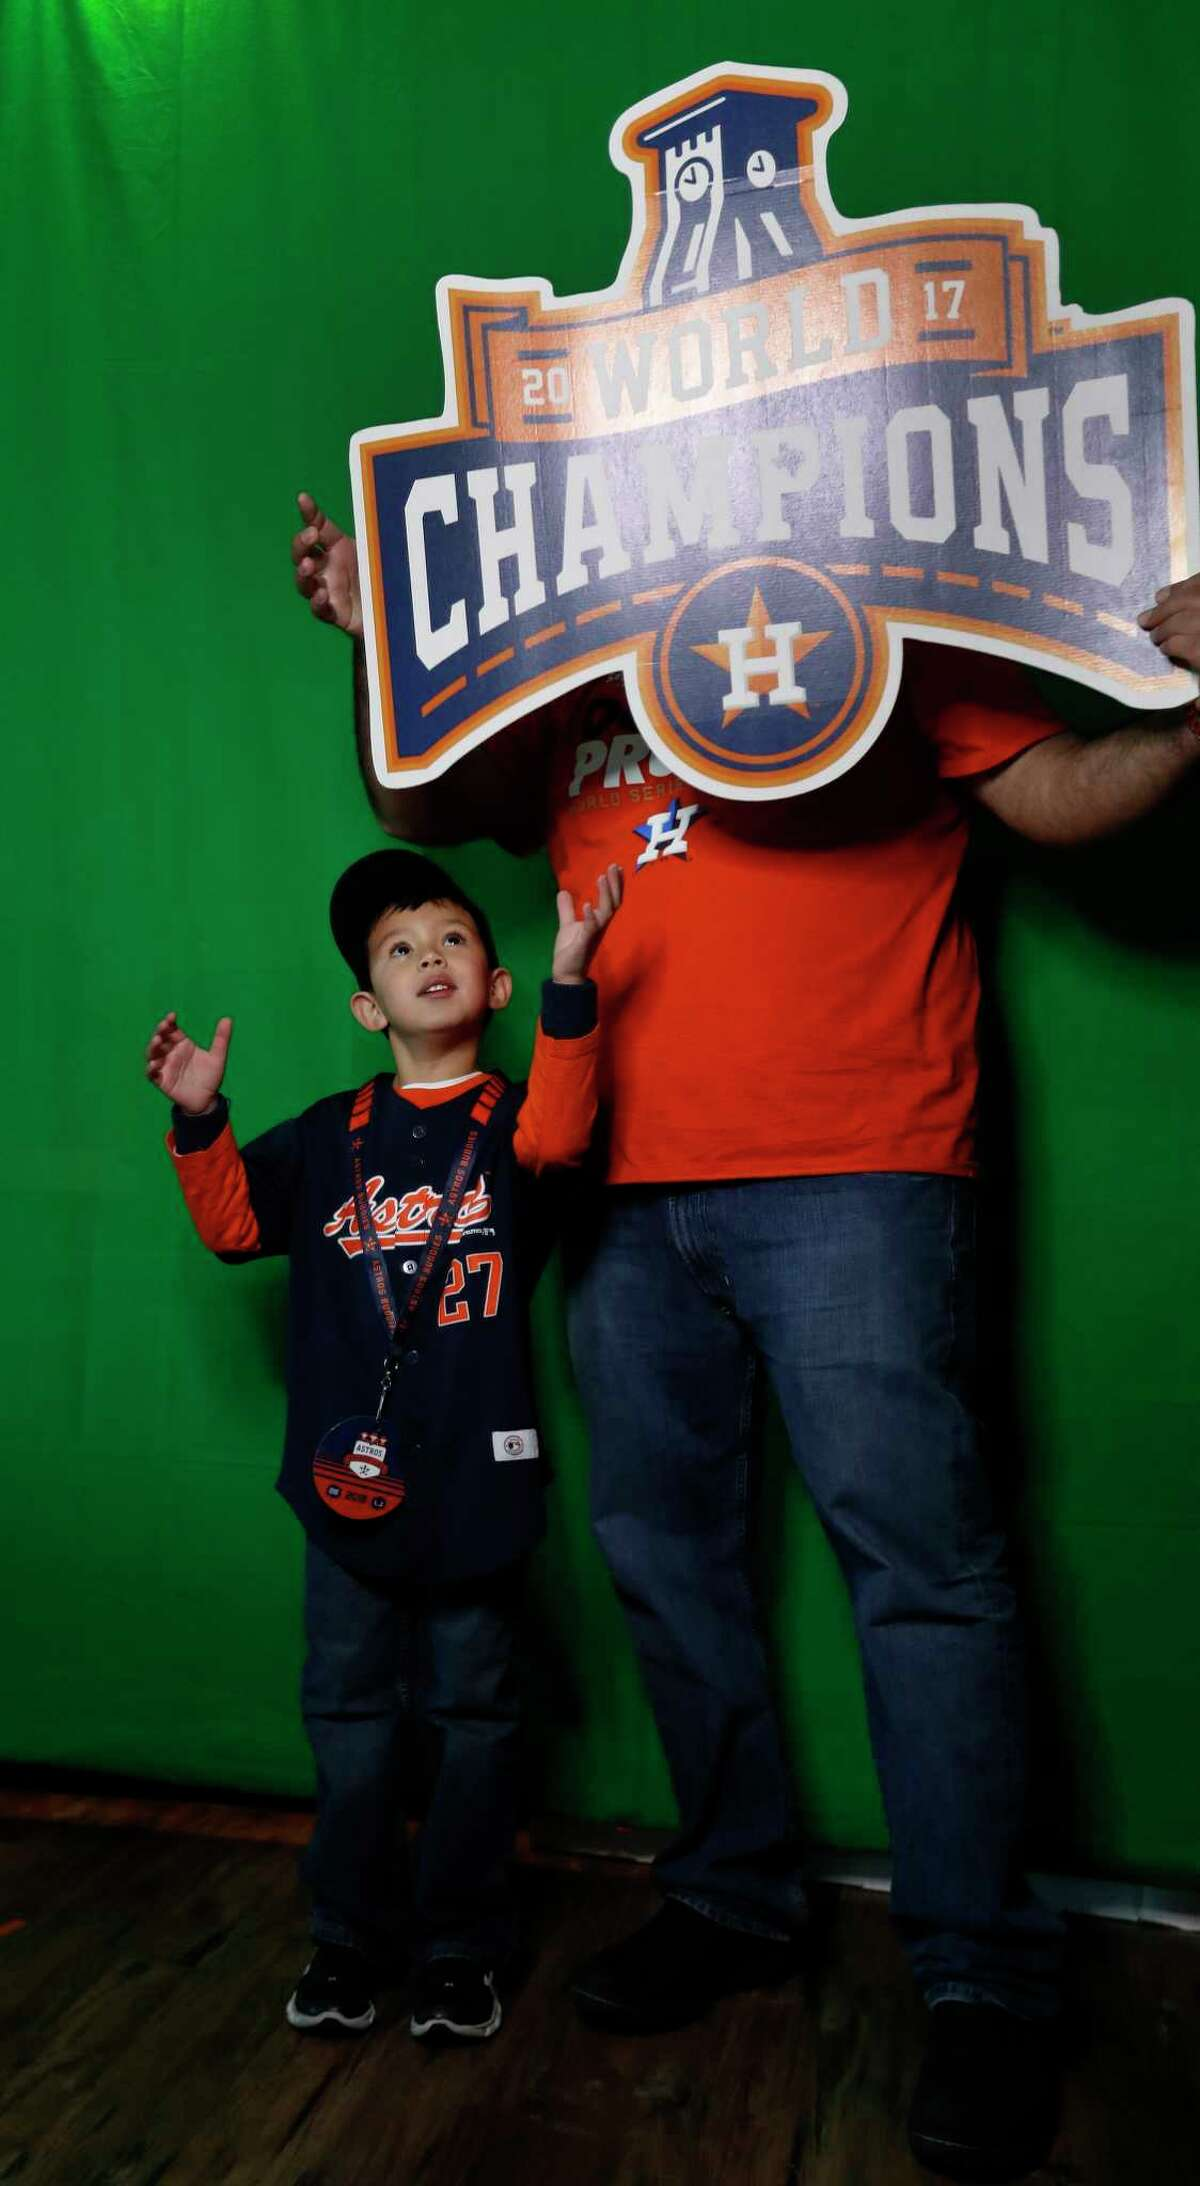 Eduardo Cardenas, 5, gets his photo taken with his dad, Luis, in the social media photo booth during the Astros Fan Fest at. inute Maid Park, Saturday, Jan. 13, 2018, in Houston.